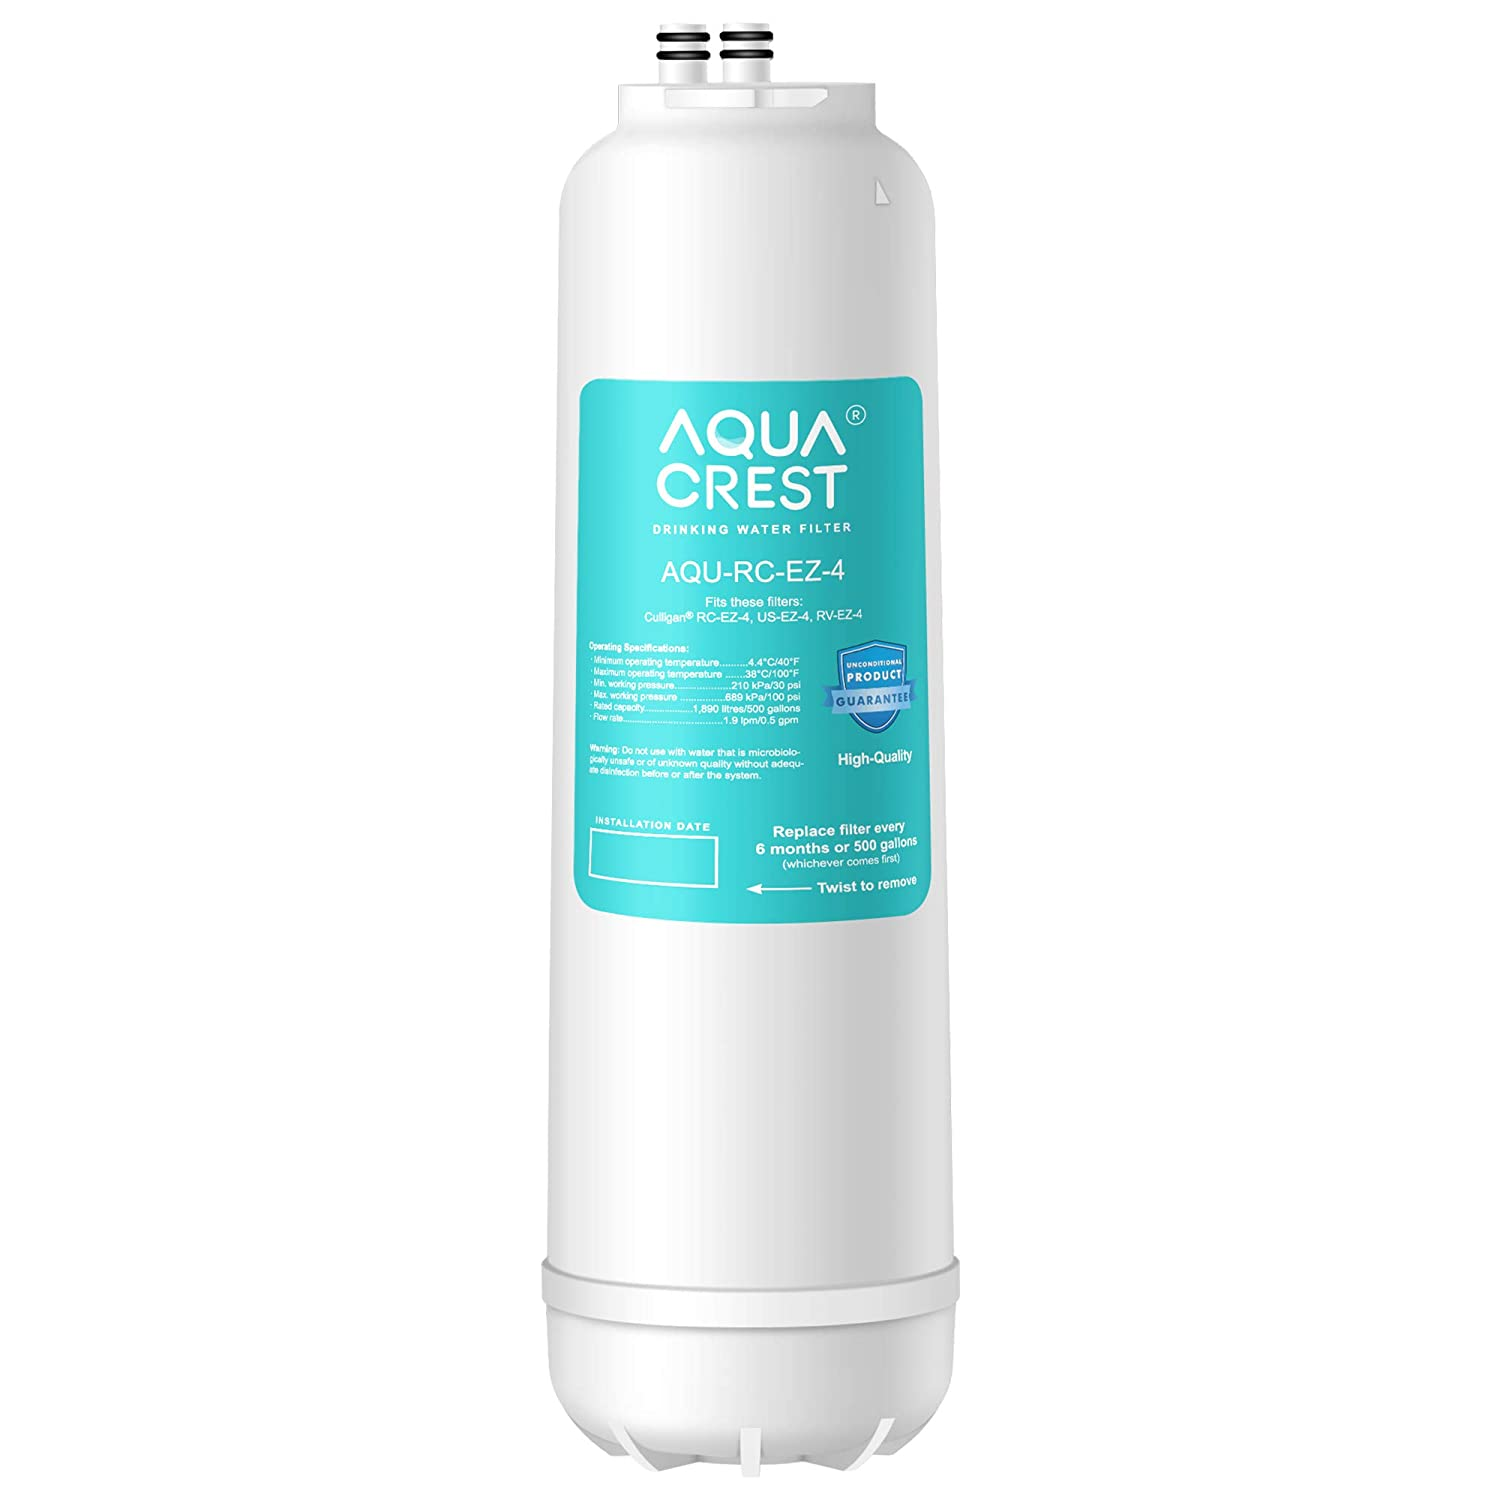 AQUACREST RC-EZ-4 Premium Water Filtration Replacement Cartridge, Compatible with all Culligan EZ Change Water Filter Systems, including RCEZ-4, IC-EZ-4, US-EZ-4, RC-EZ-3, RC-EZ-1, 500 Gallons